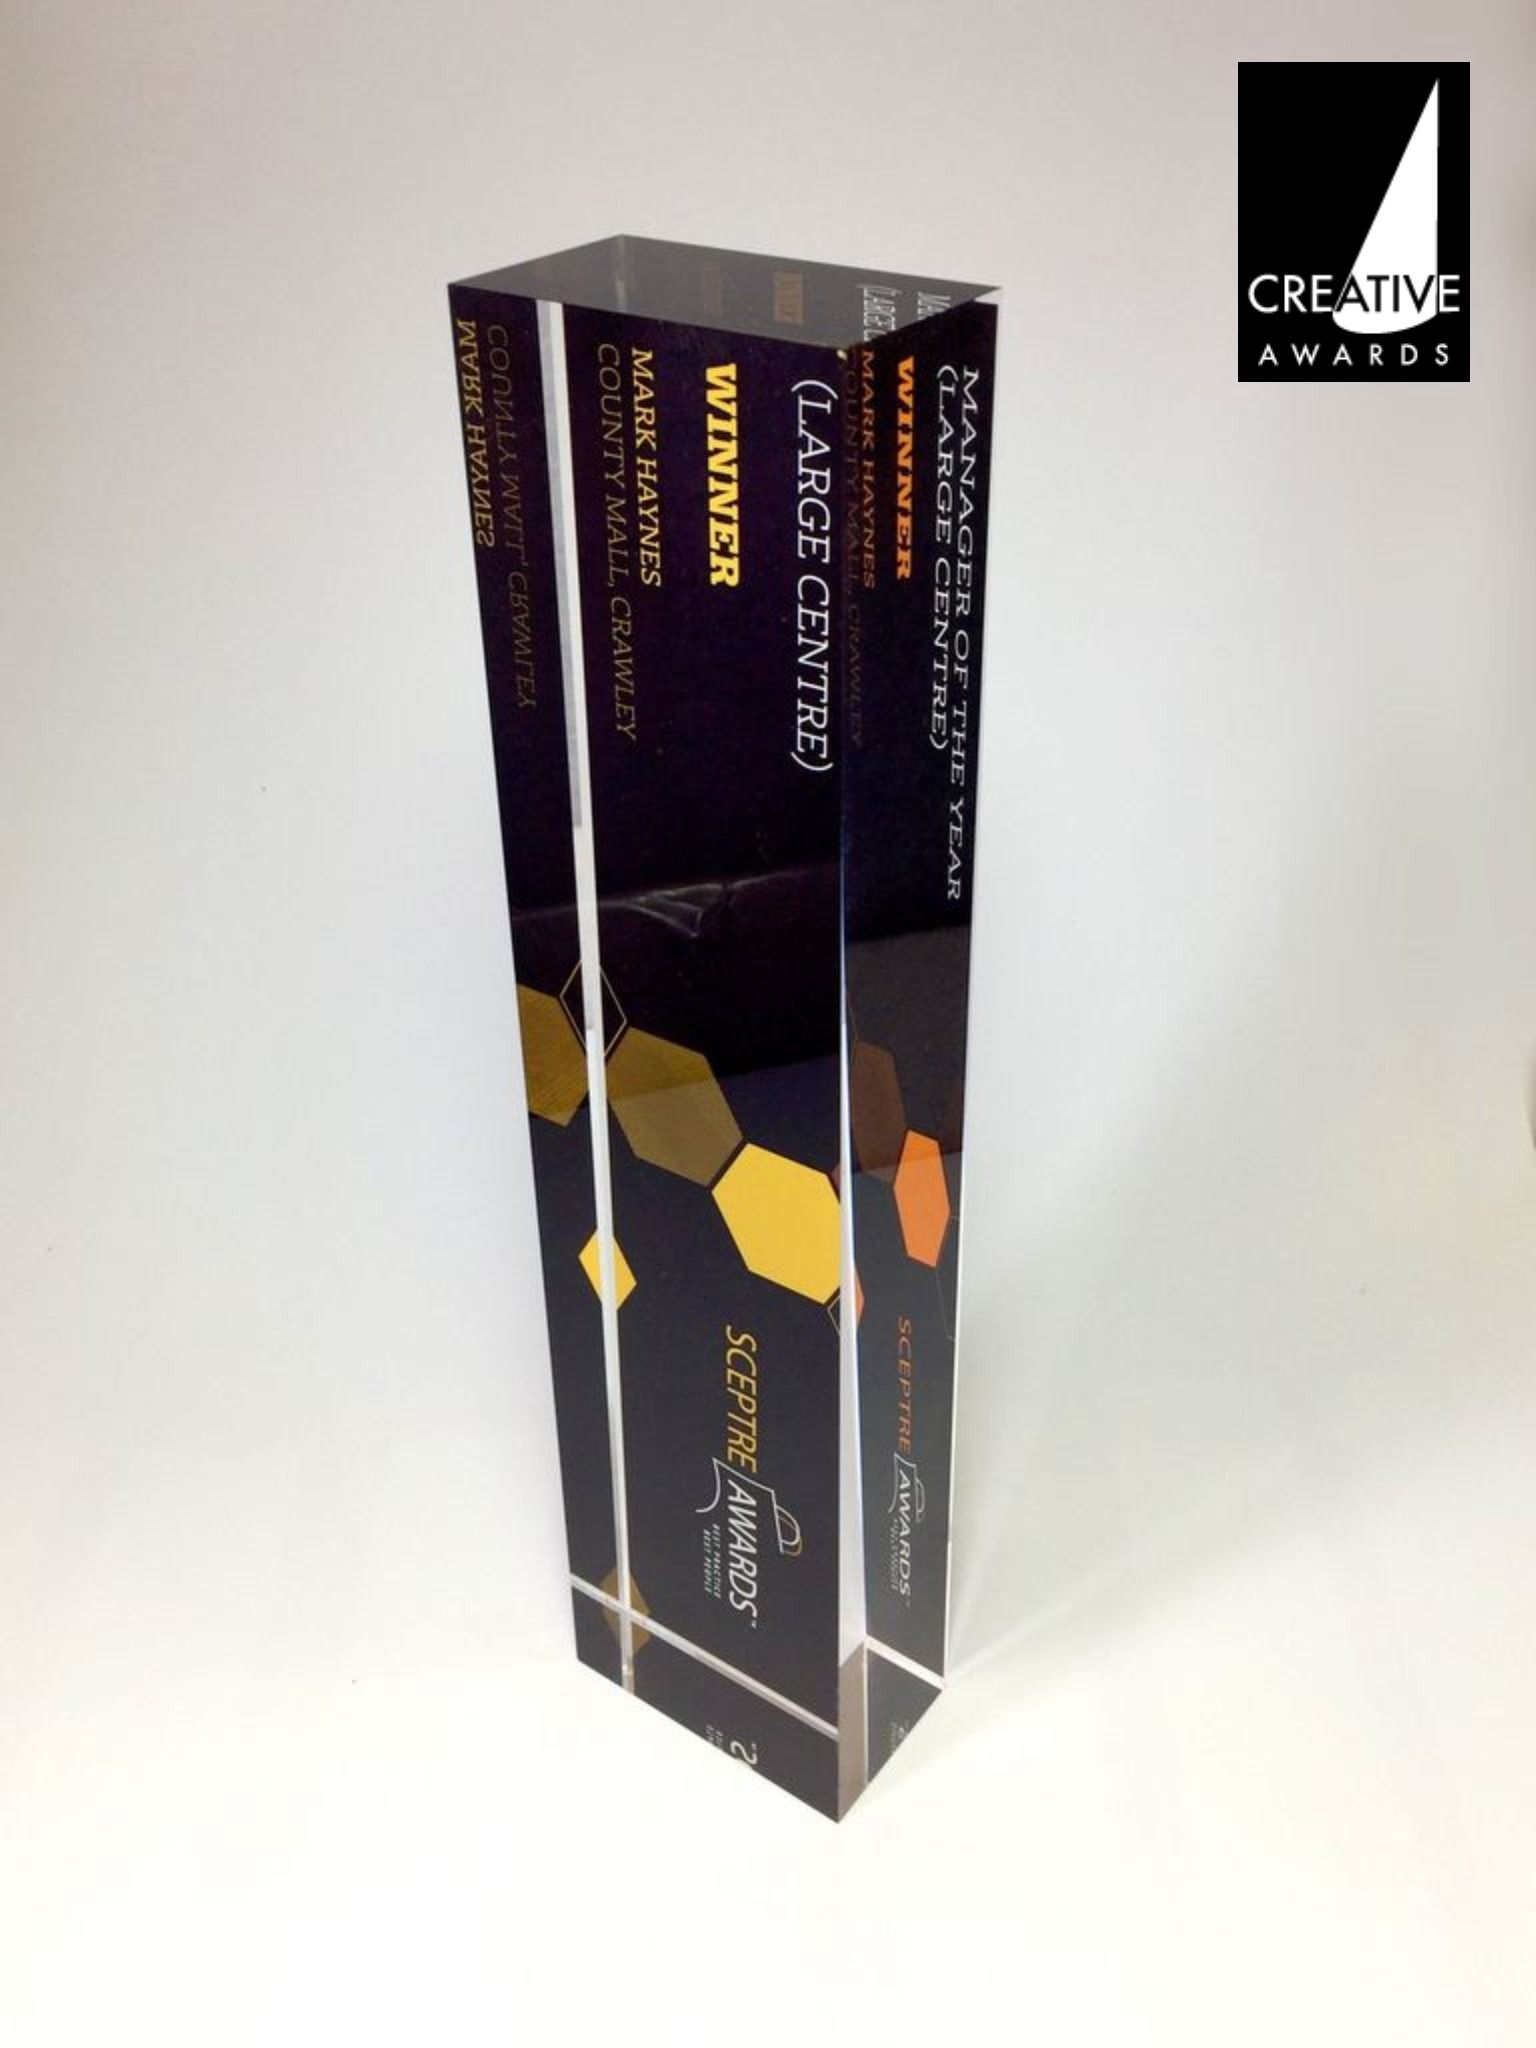 Whether horizontal or vertical, the Rear Printed Acrylic Block Award looks impressive. The impressive award is made from a thick custom cut block of optically clear #acrylic and features custom made hi-res rear printed #graphics. ____ #designideas #customdesign #bespokedesign #events #eventplanners #CreativeAwards #London #HattonGarden #AcrylicPerspex #Perspex #Acryliccasting #workshoplife #workshop #awardideas #designagency #creativeagency #customcasting #CNC